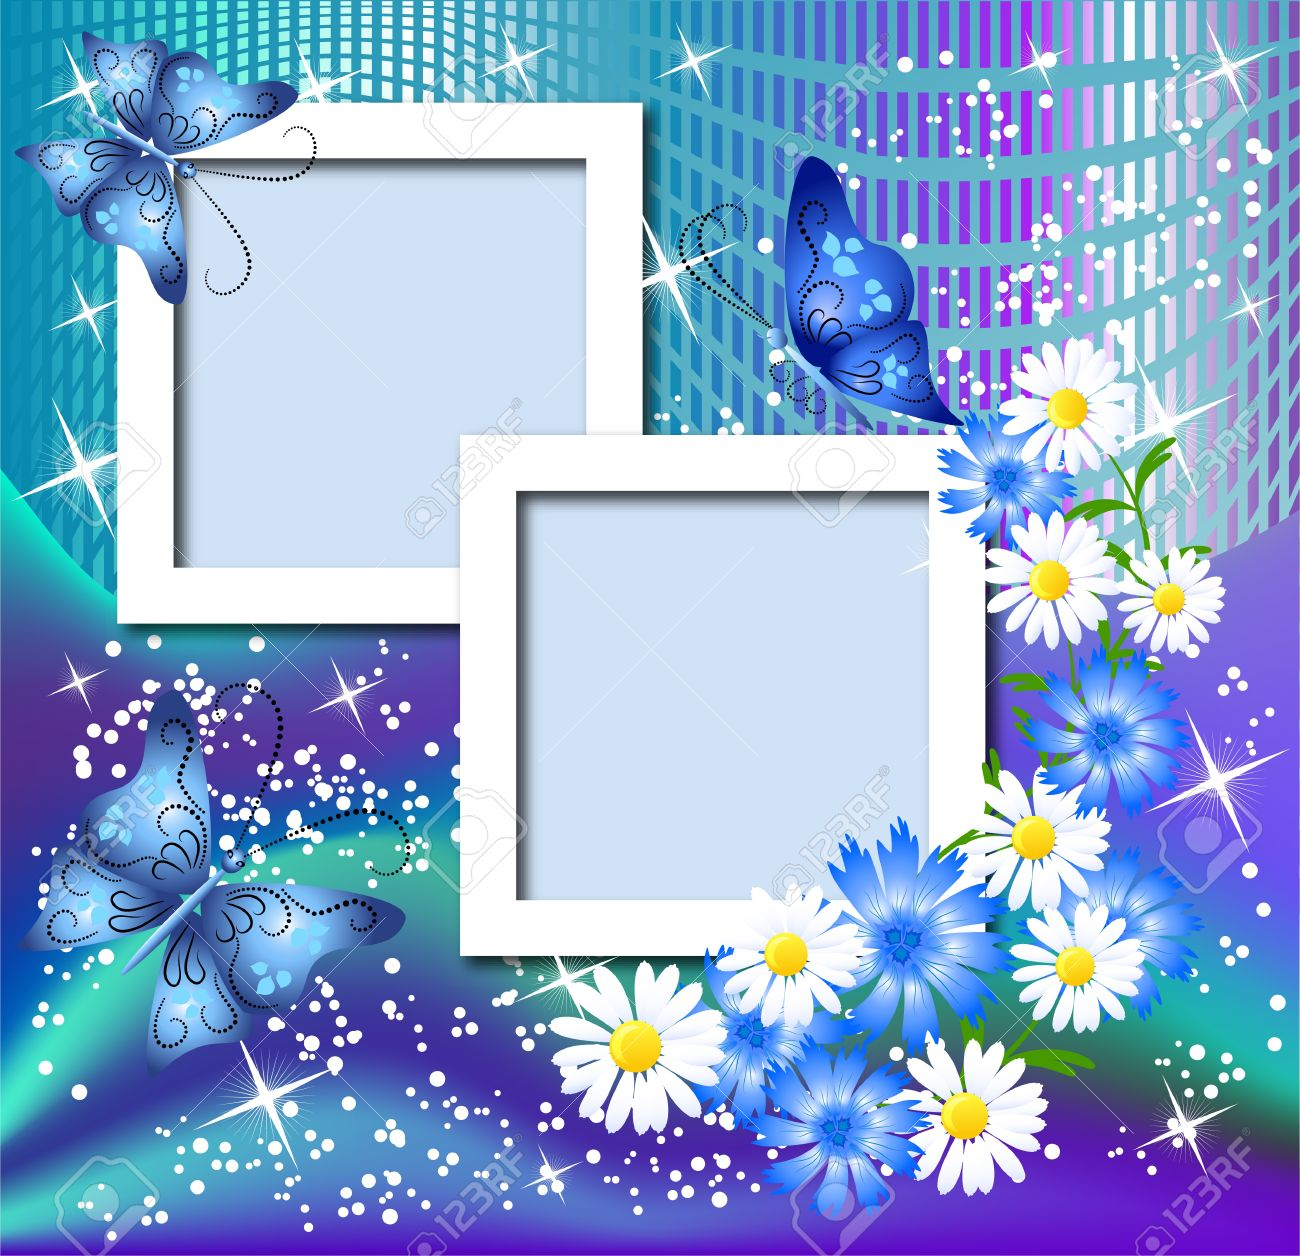 design photo frames with flowers and butterfly stock vector 10057274